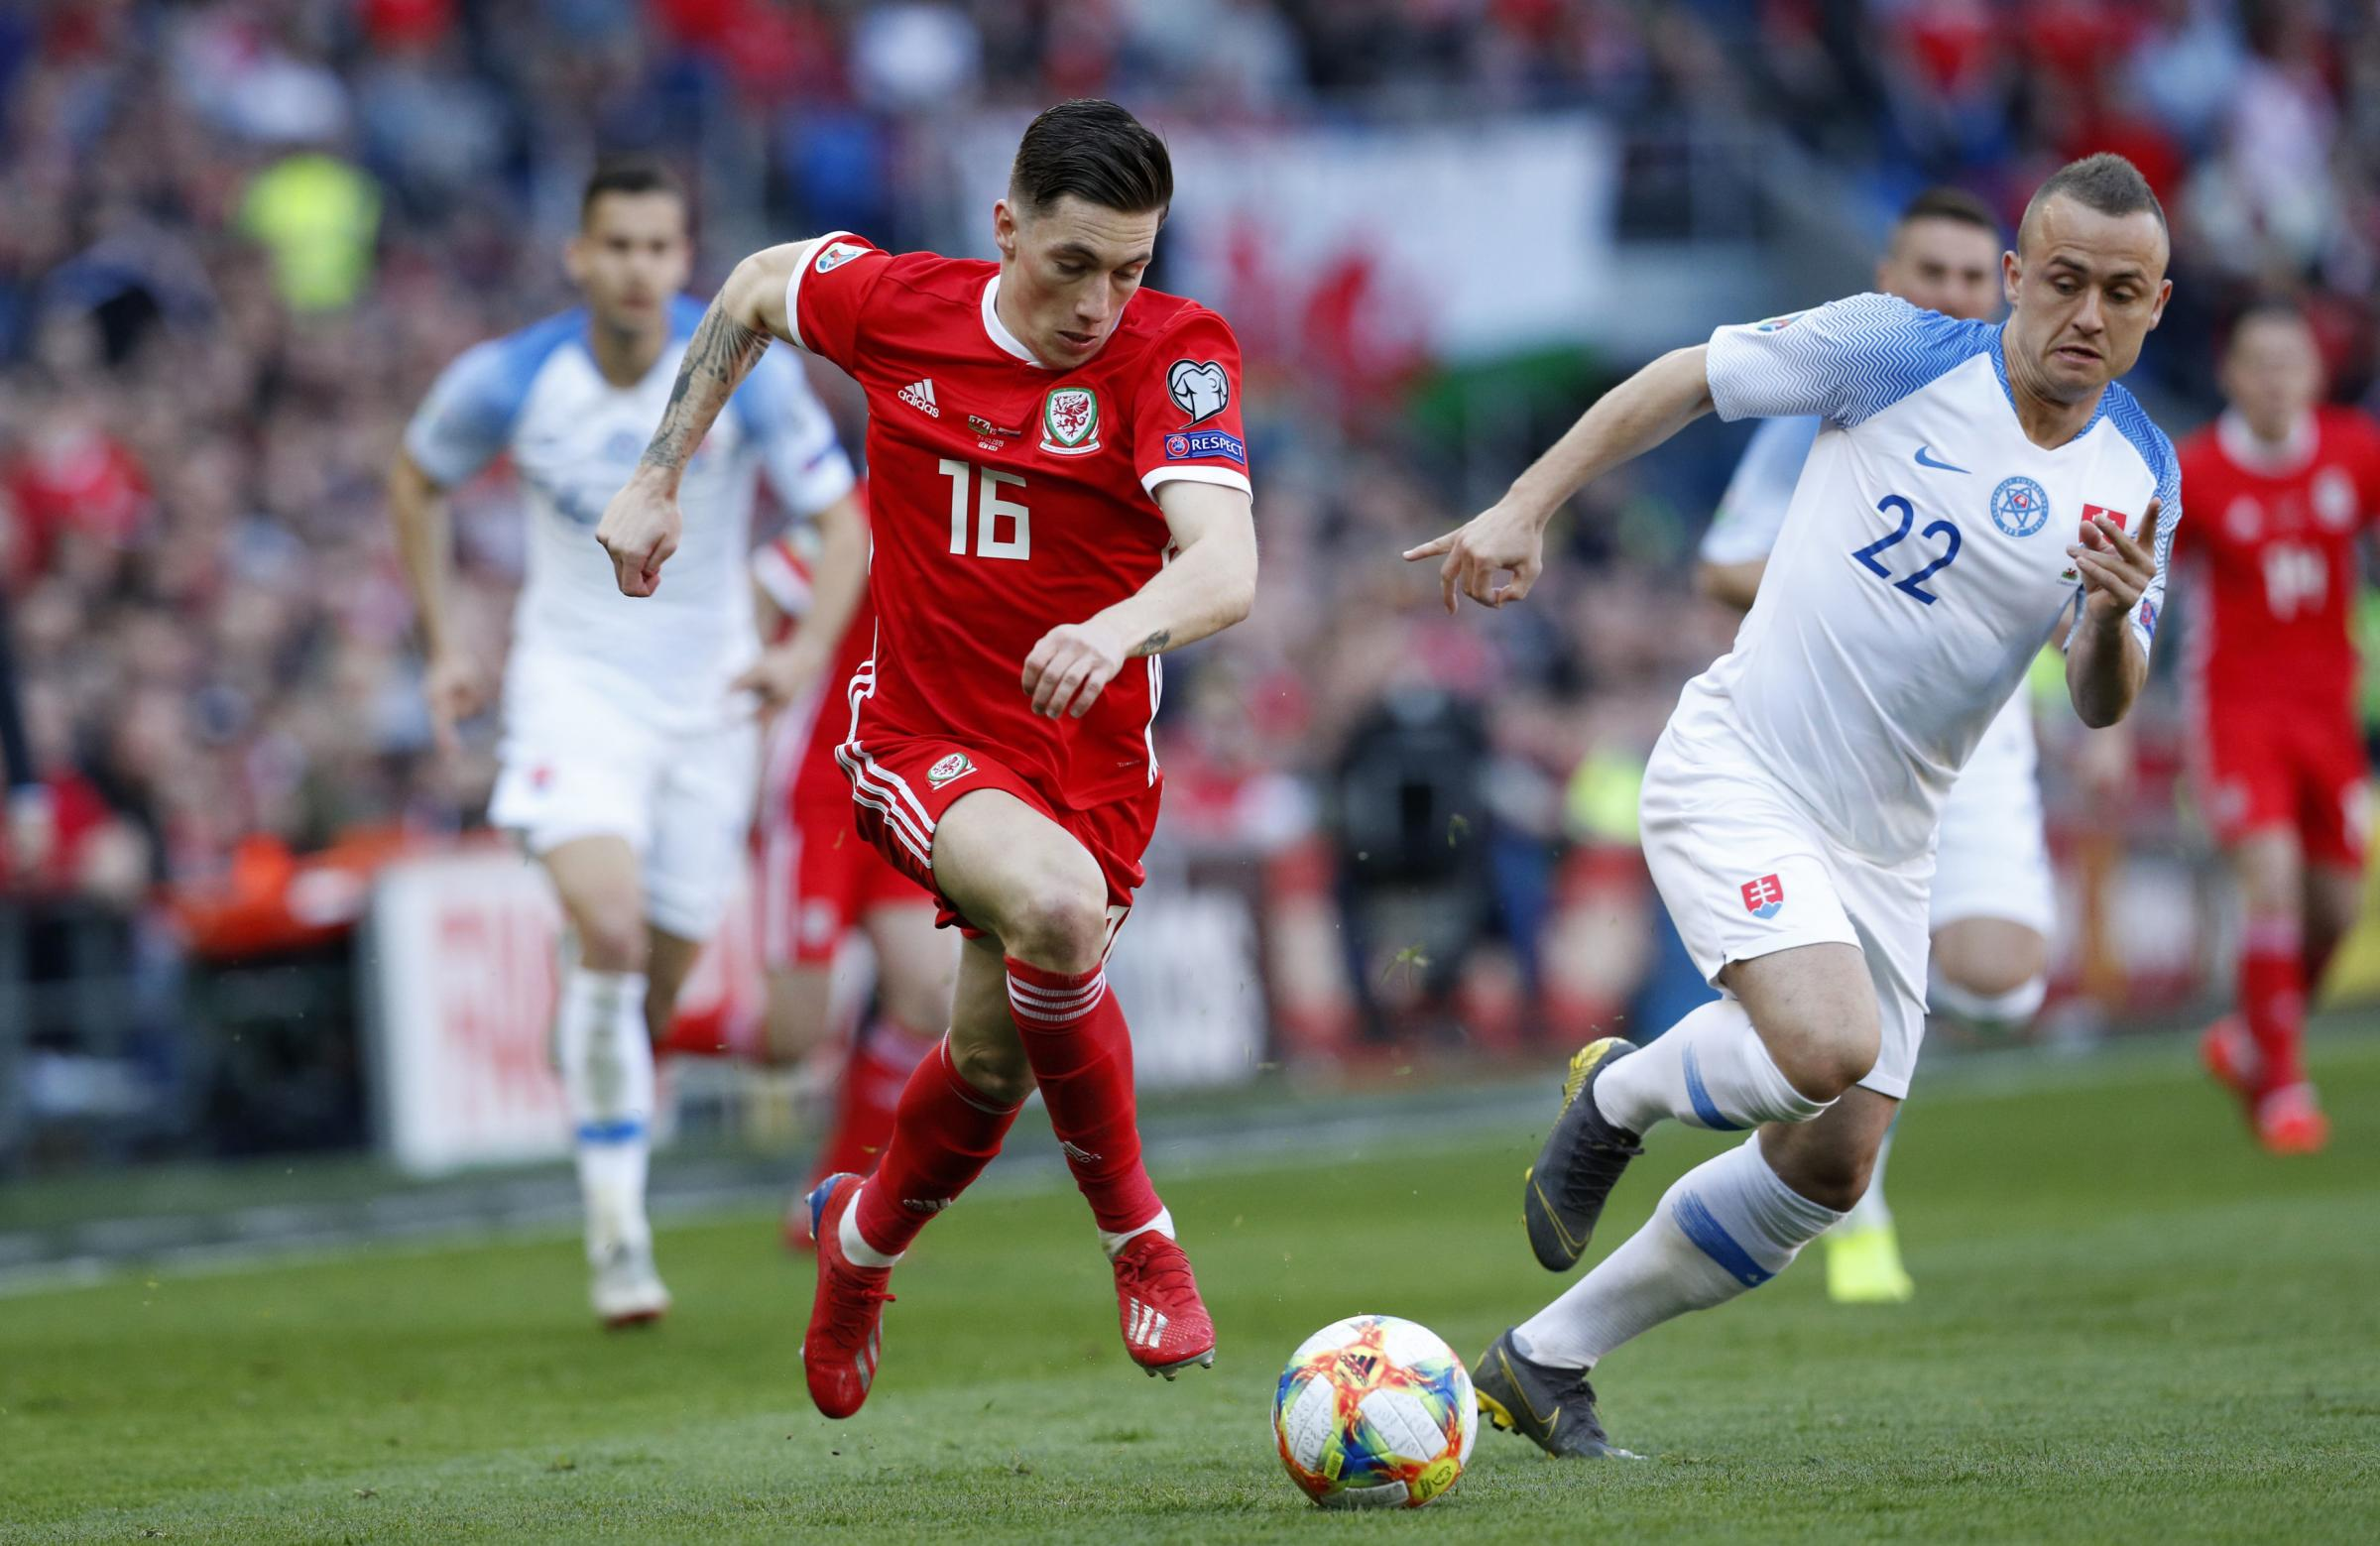 AFC Bournemouth in talks with Liverpool to sign Harry Wilson on loan deal